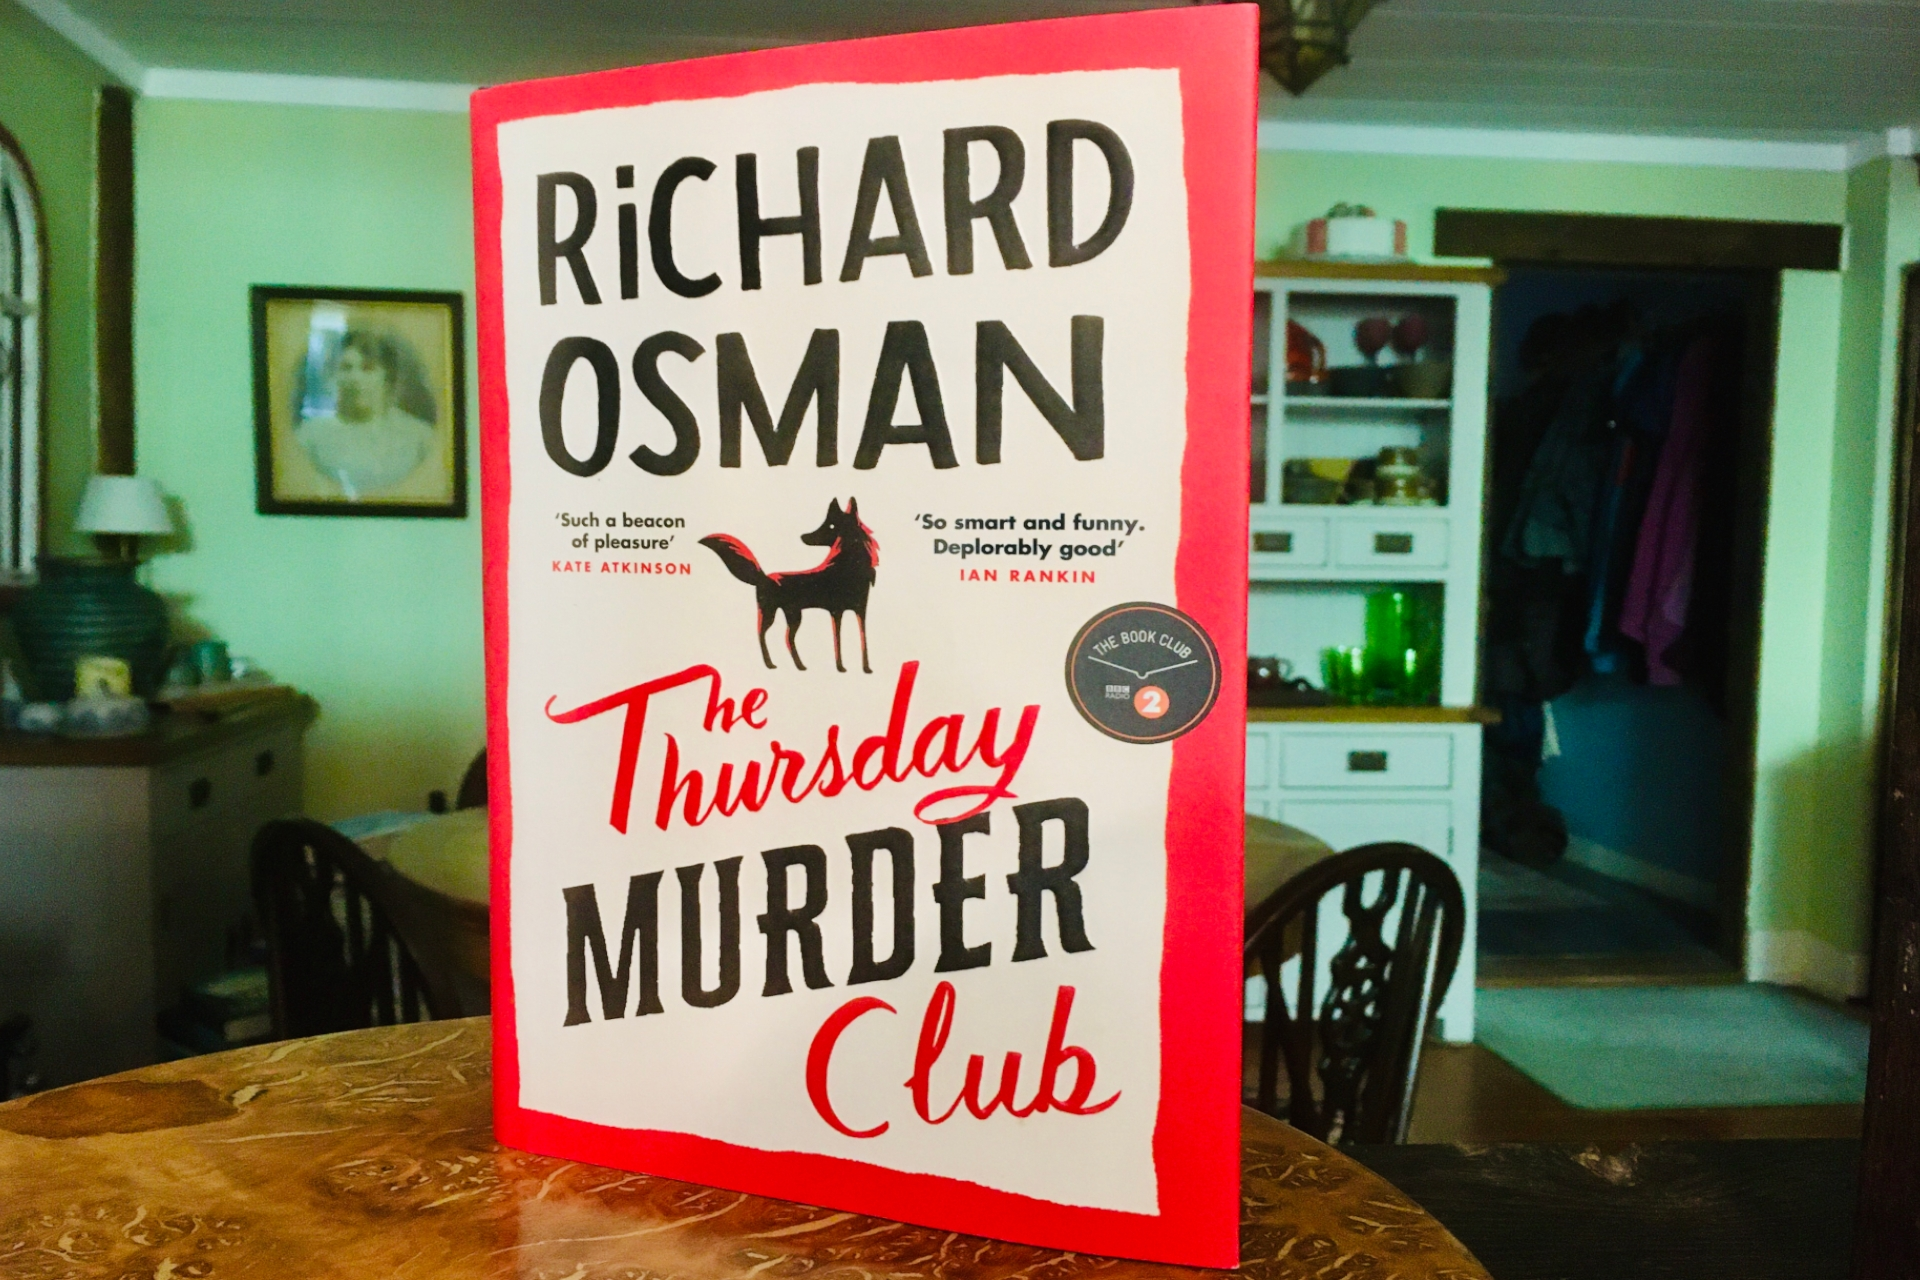 October 2020 Book Club Recommendation: The Thursday Murder Club by Richard Osman